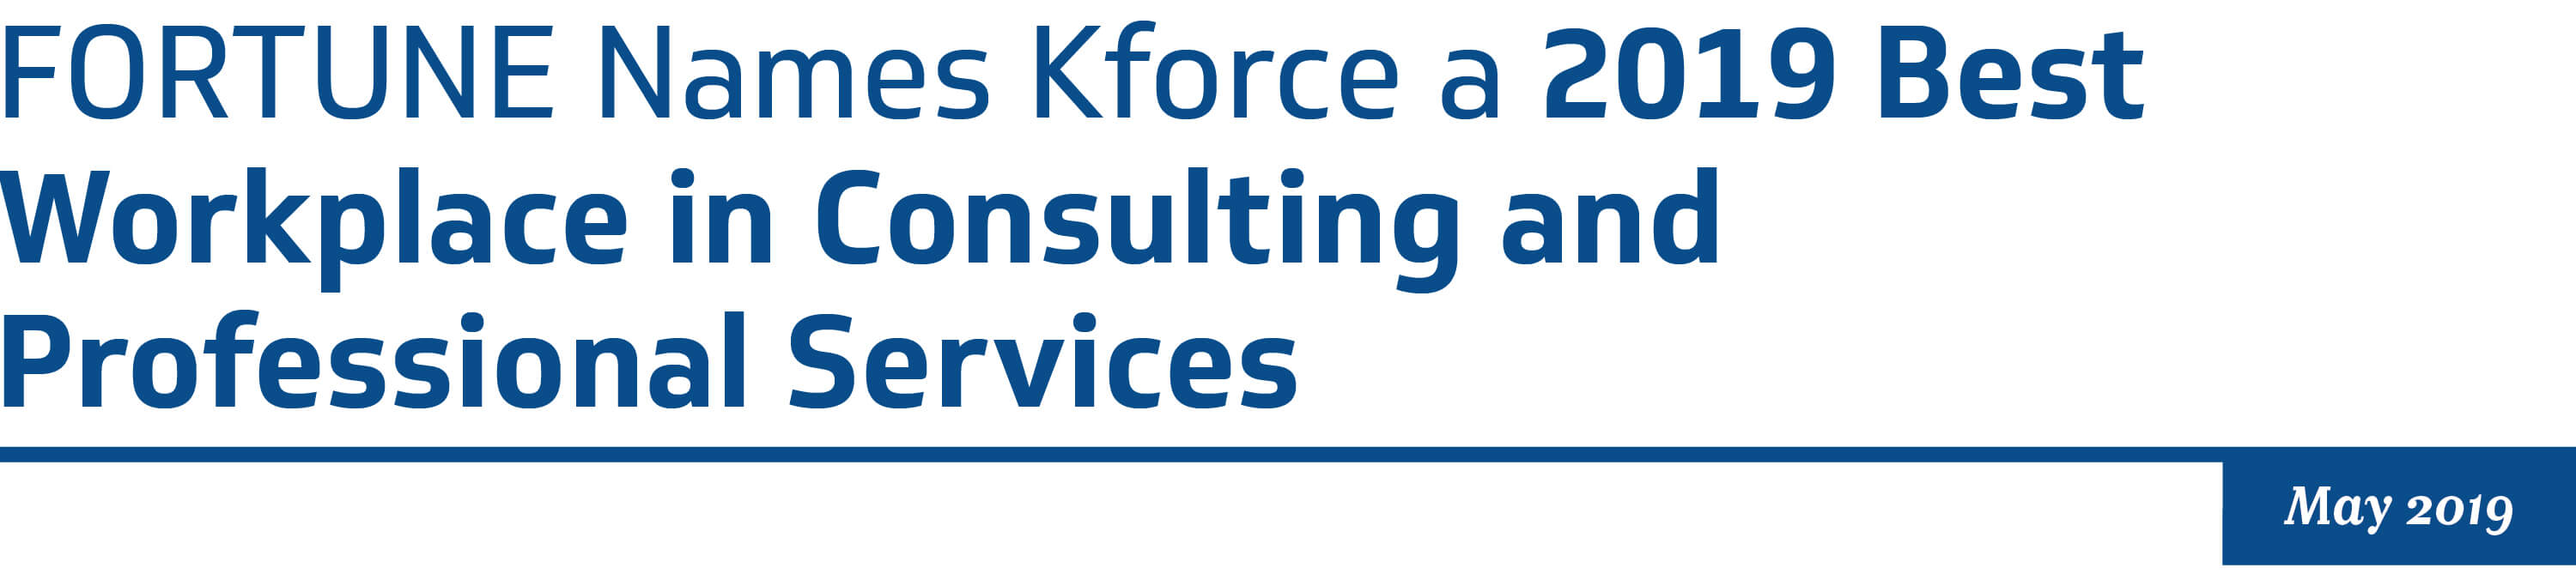 FORTUNE Names Kforce a 2019 Best Workplace in Consulting and Professional Services